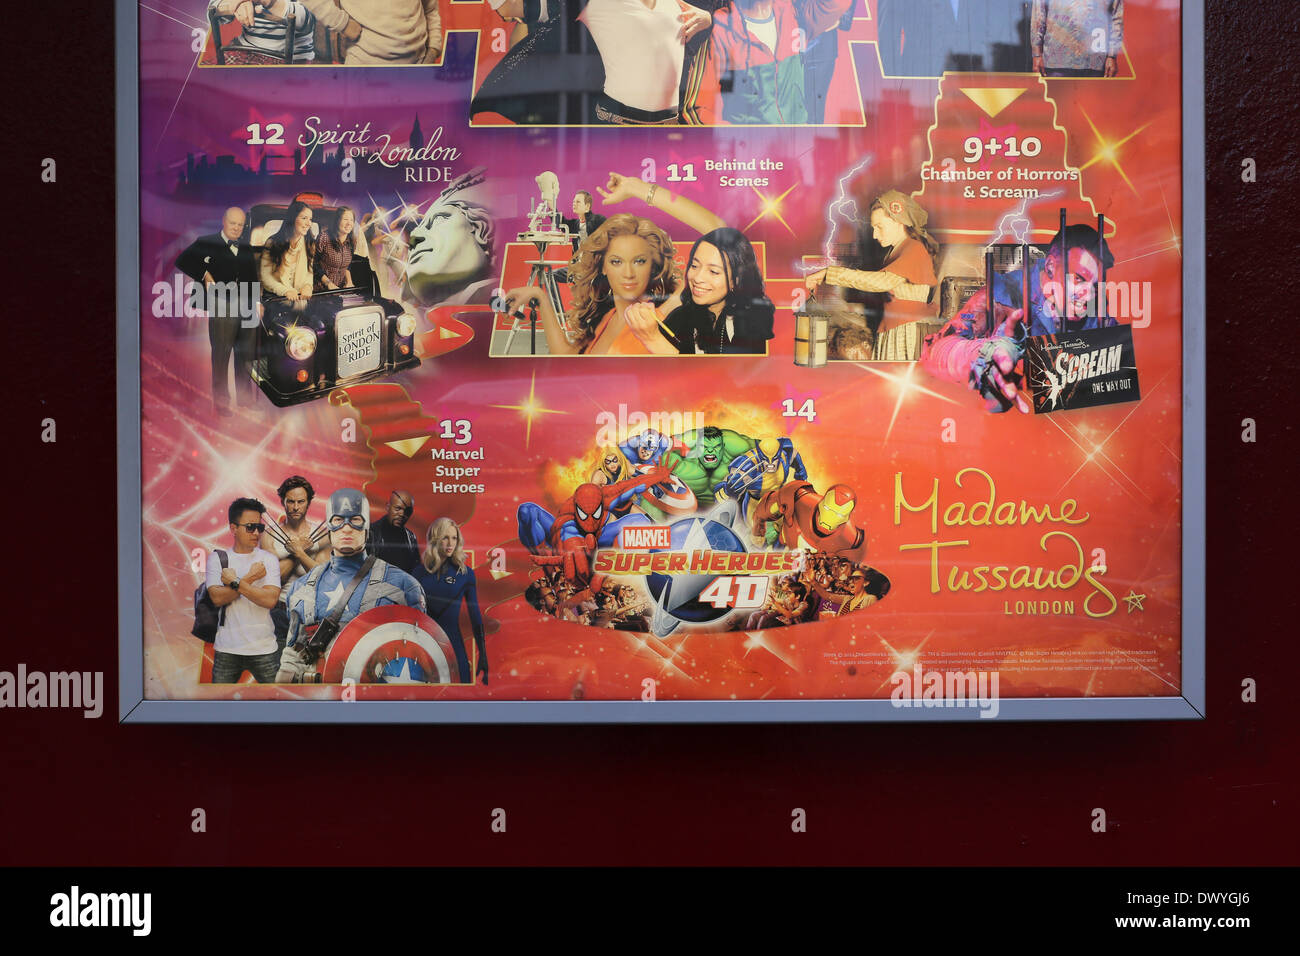 Poster outside Madame Tussaud's wax works museum in central London, advertising Marvel superheroes at the tourist attraction. - Stock Image